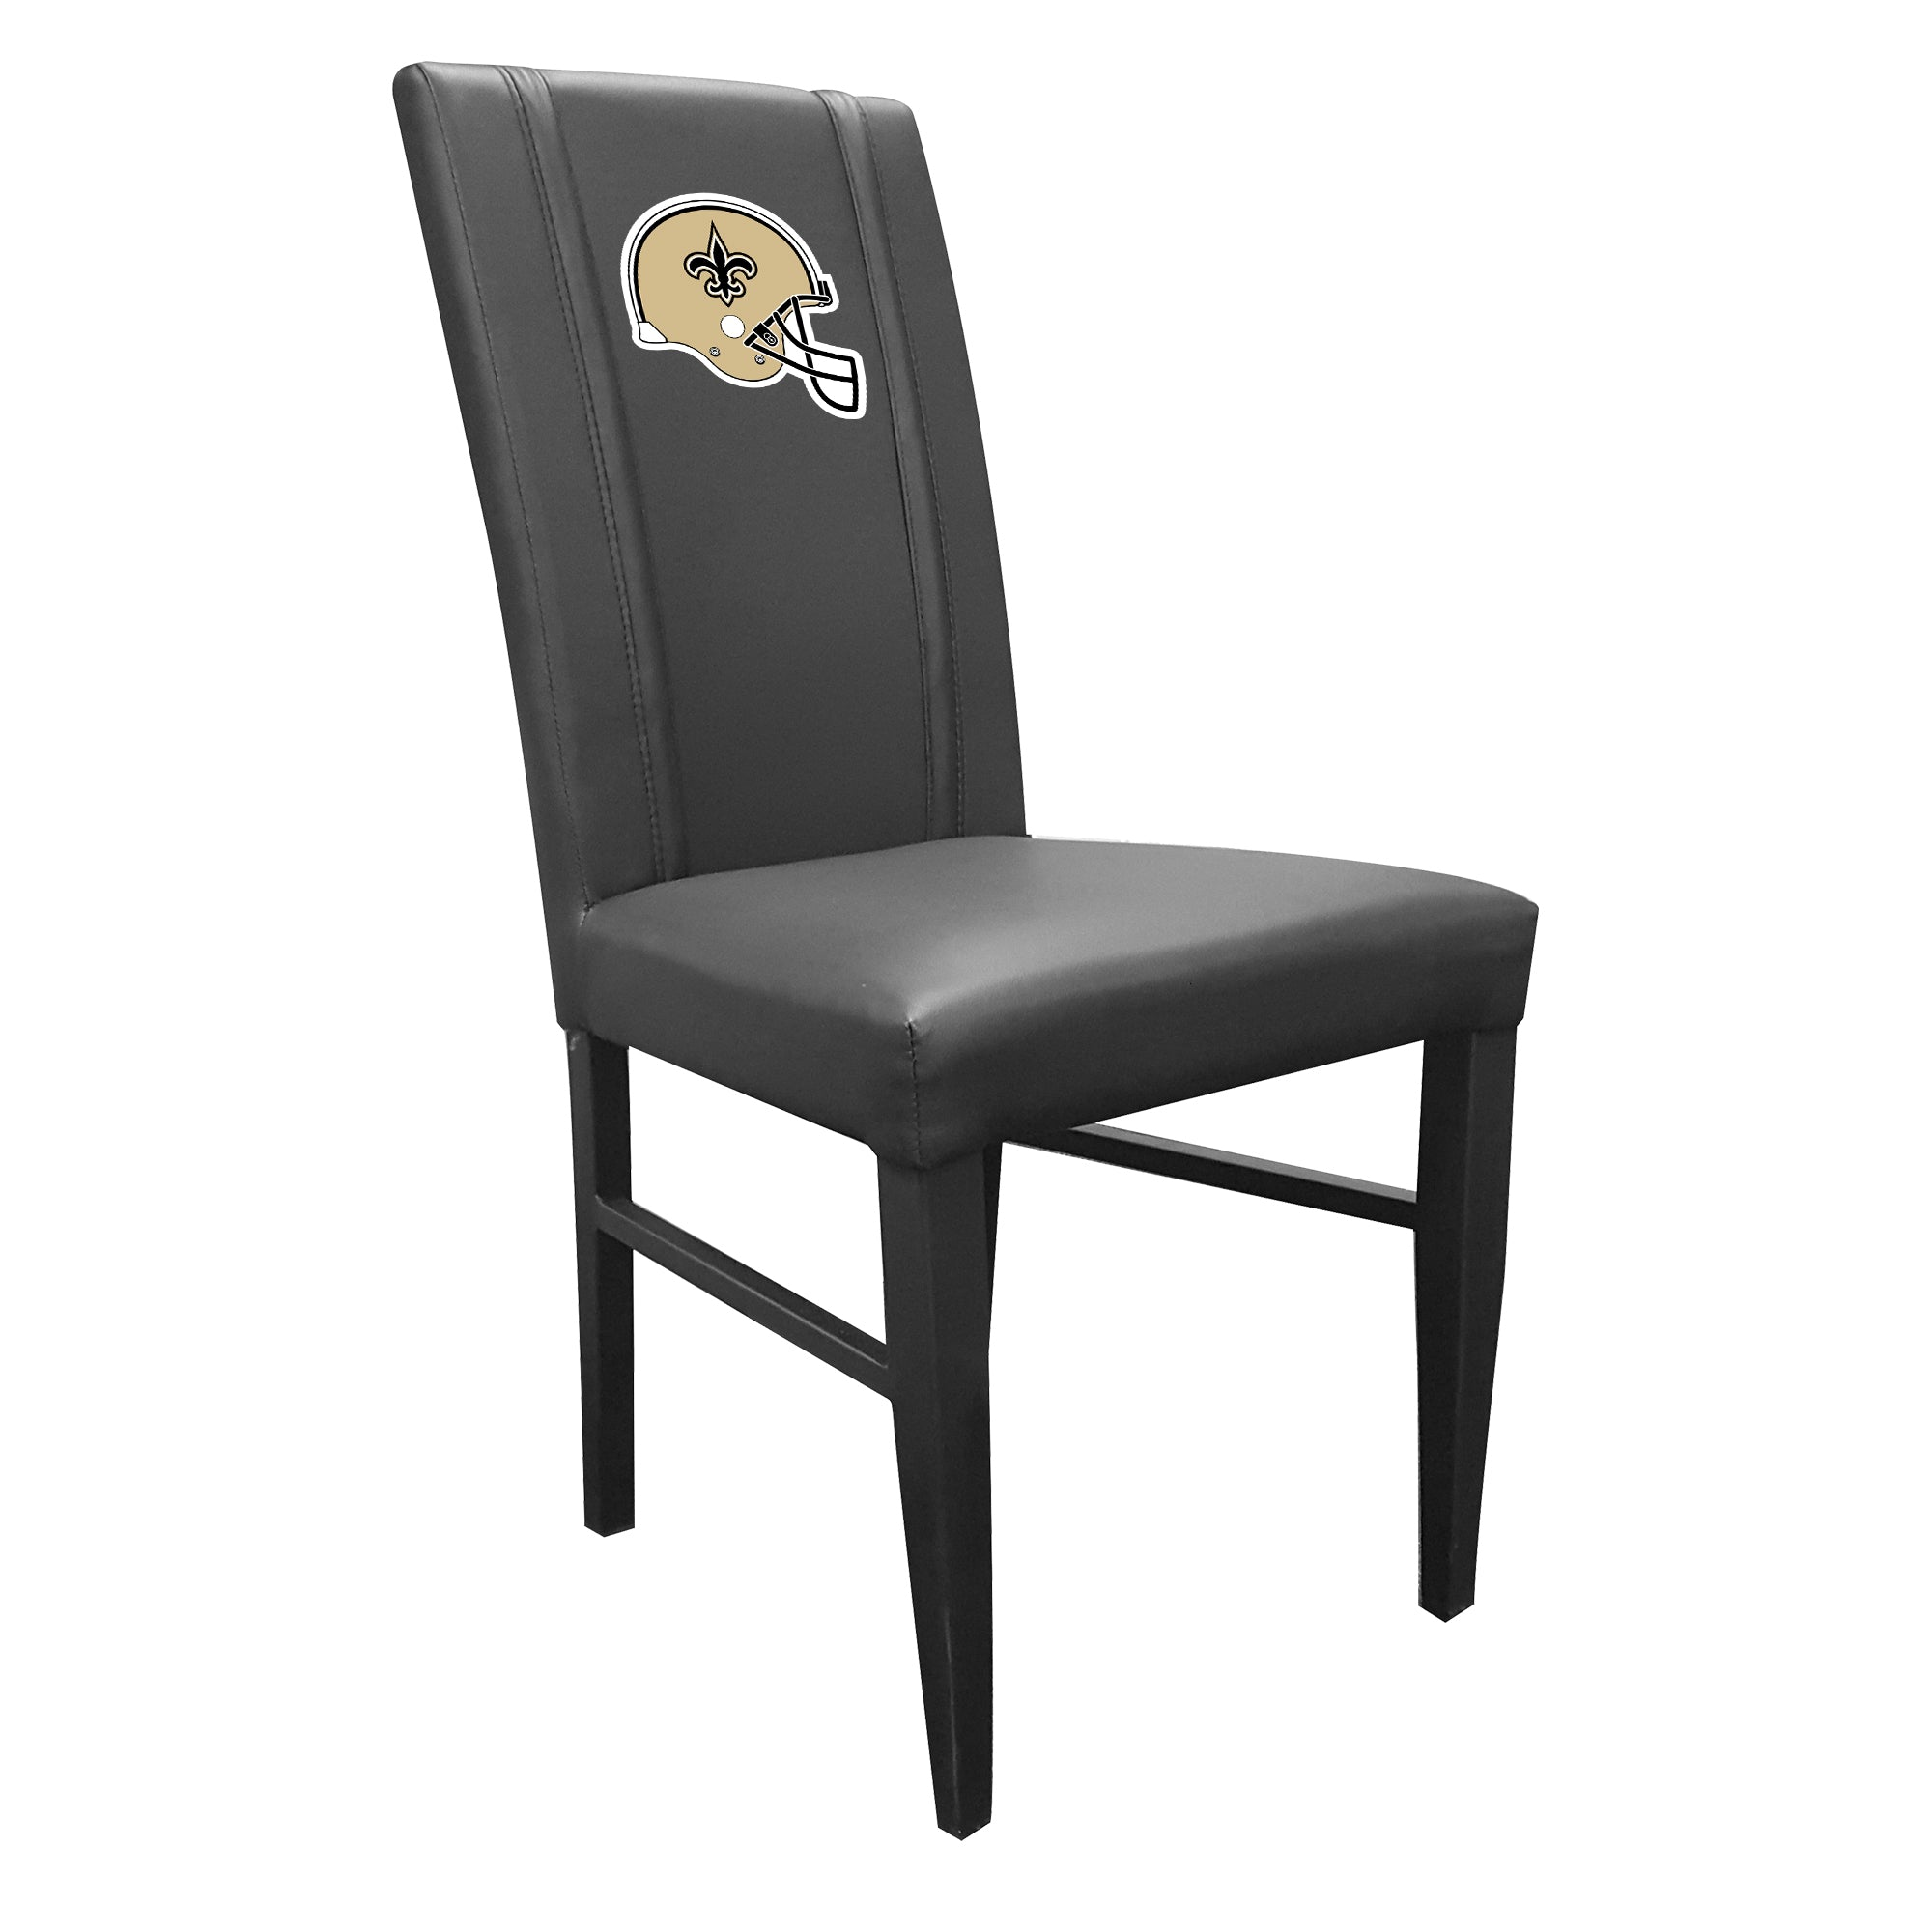 Side Chair 2000 with  New Orleans Saints Helmet Logo